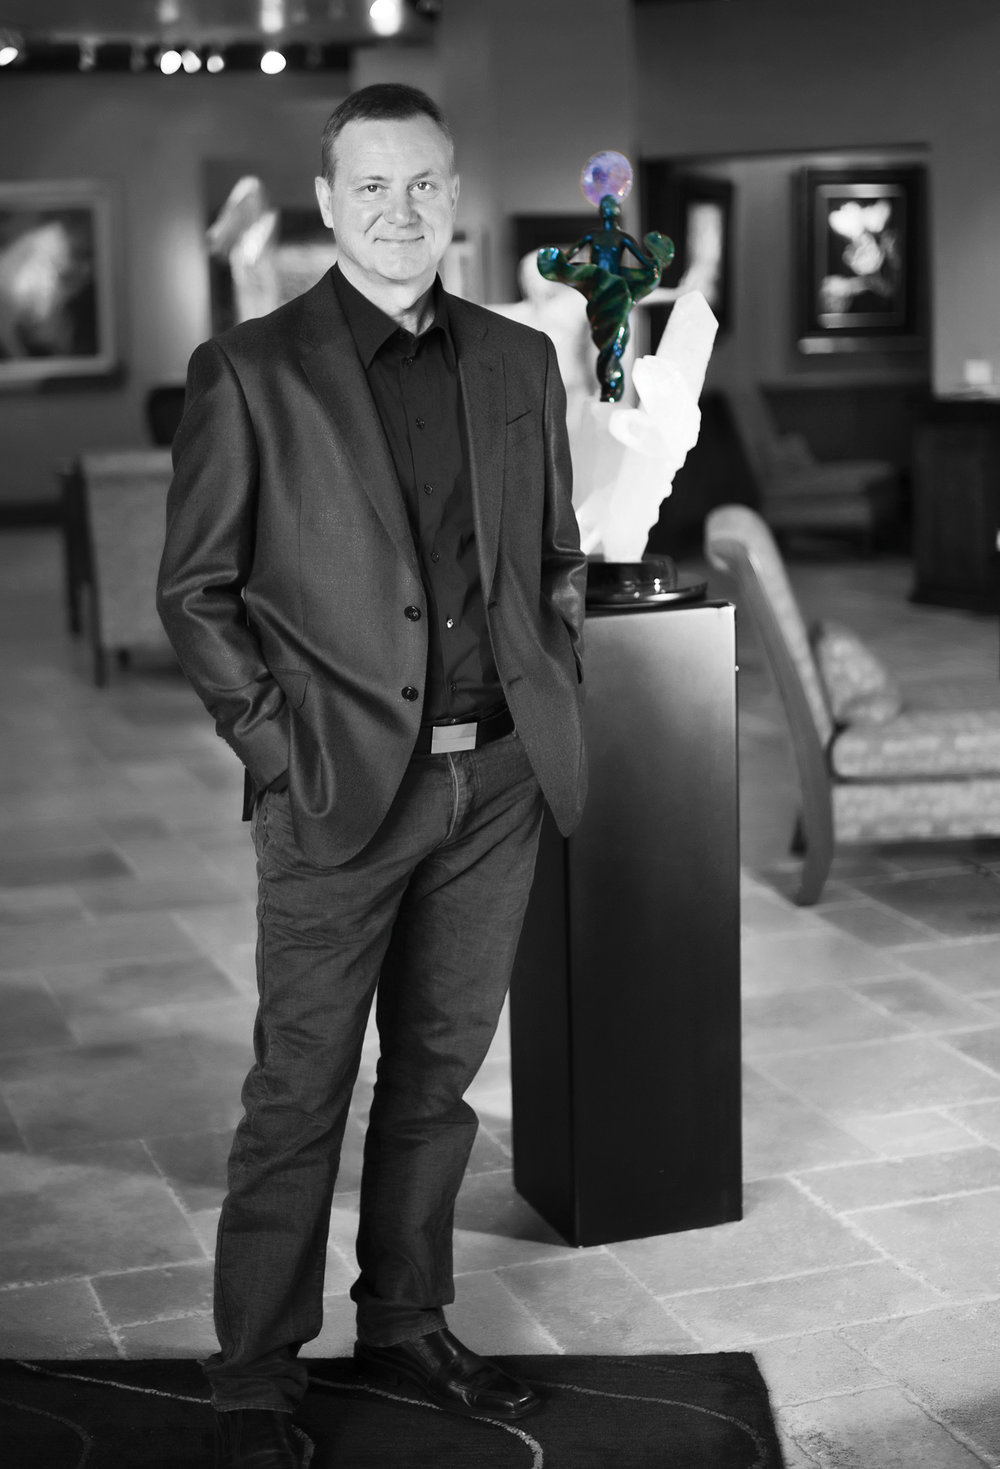 Lyle Sopel's experimental exploration with precious stones has allowed him to push the boundaries as a jade sculptor. His nature-inspired works are known to collectors around the globe.